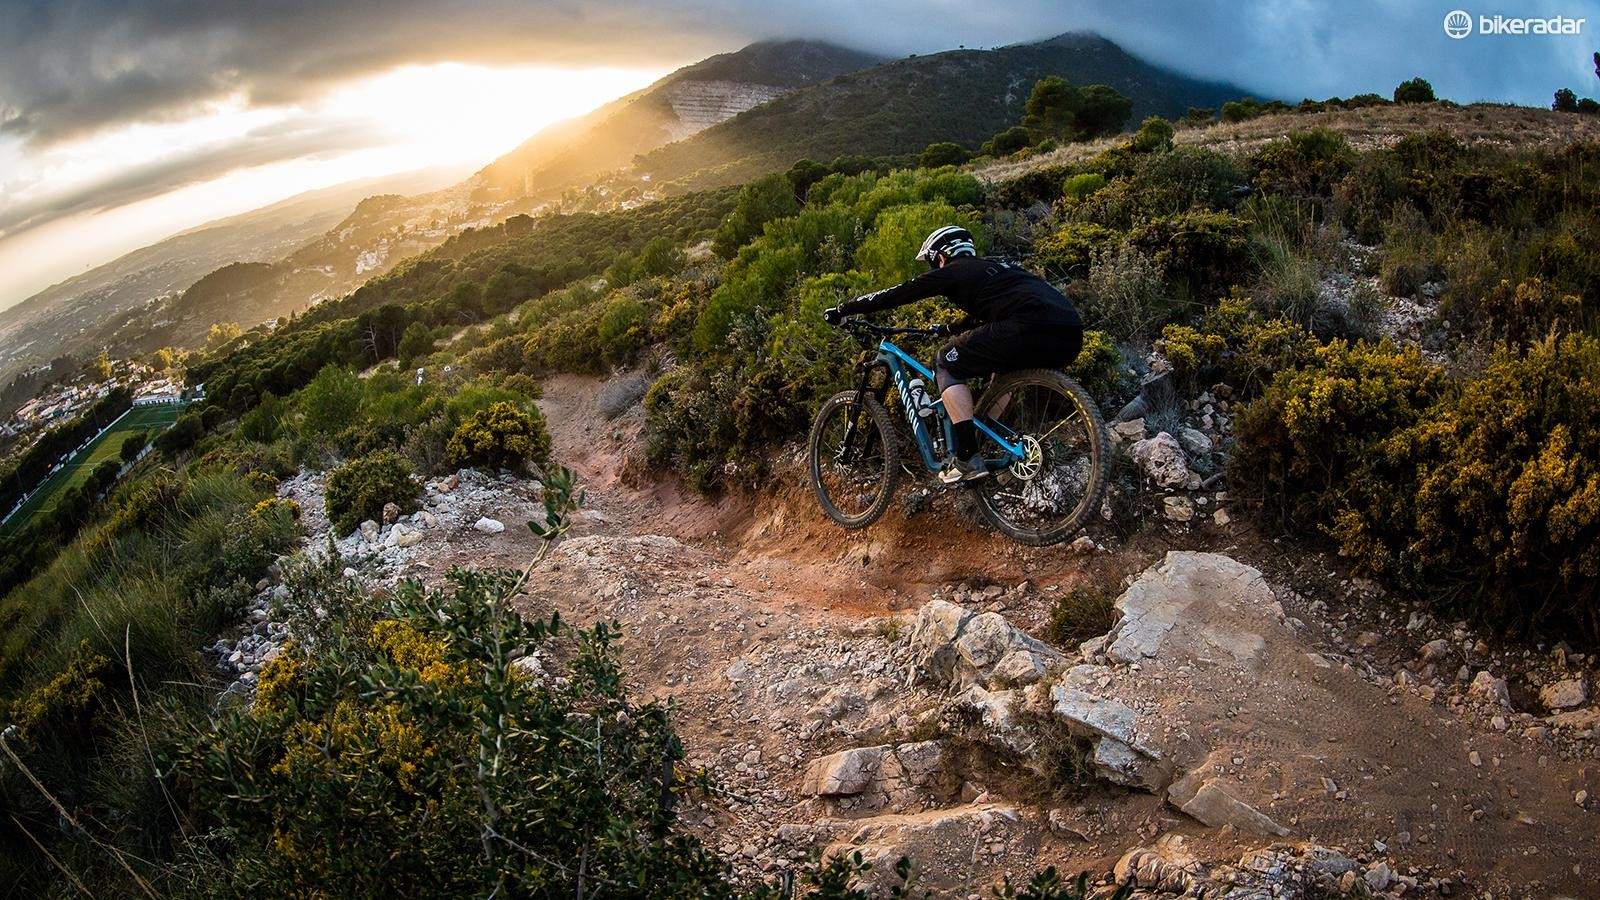 The Strive breeds confidence and will allow you to handle some pretty intimidating terrain